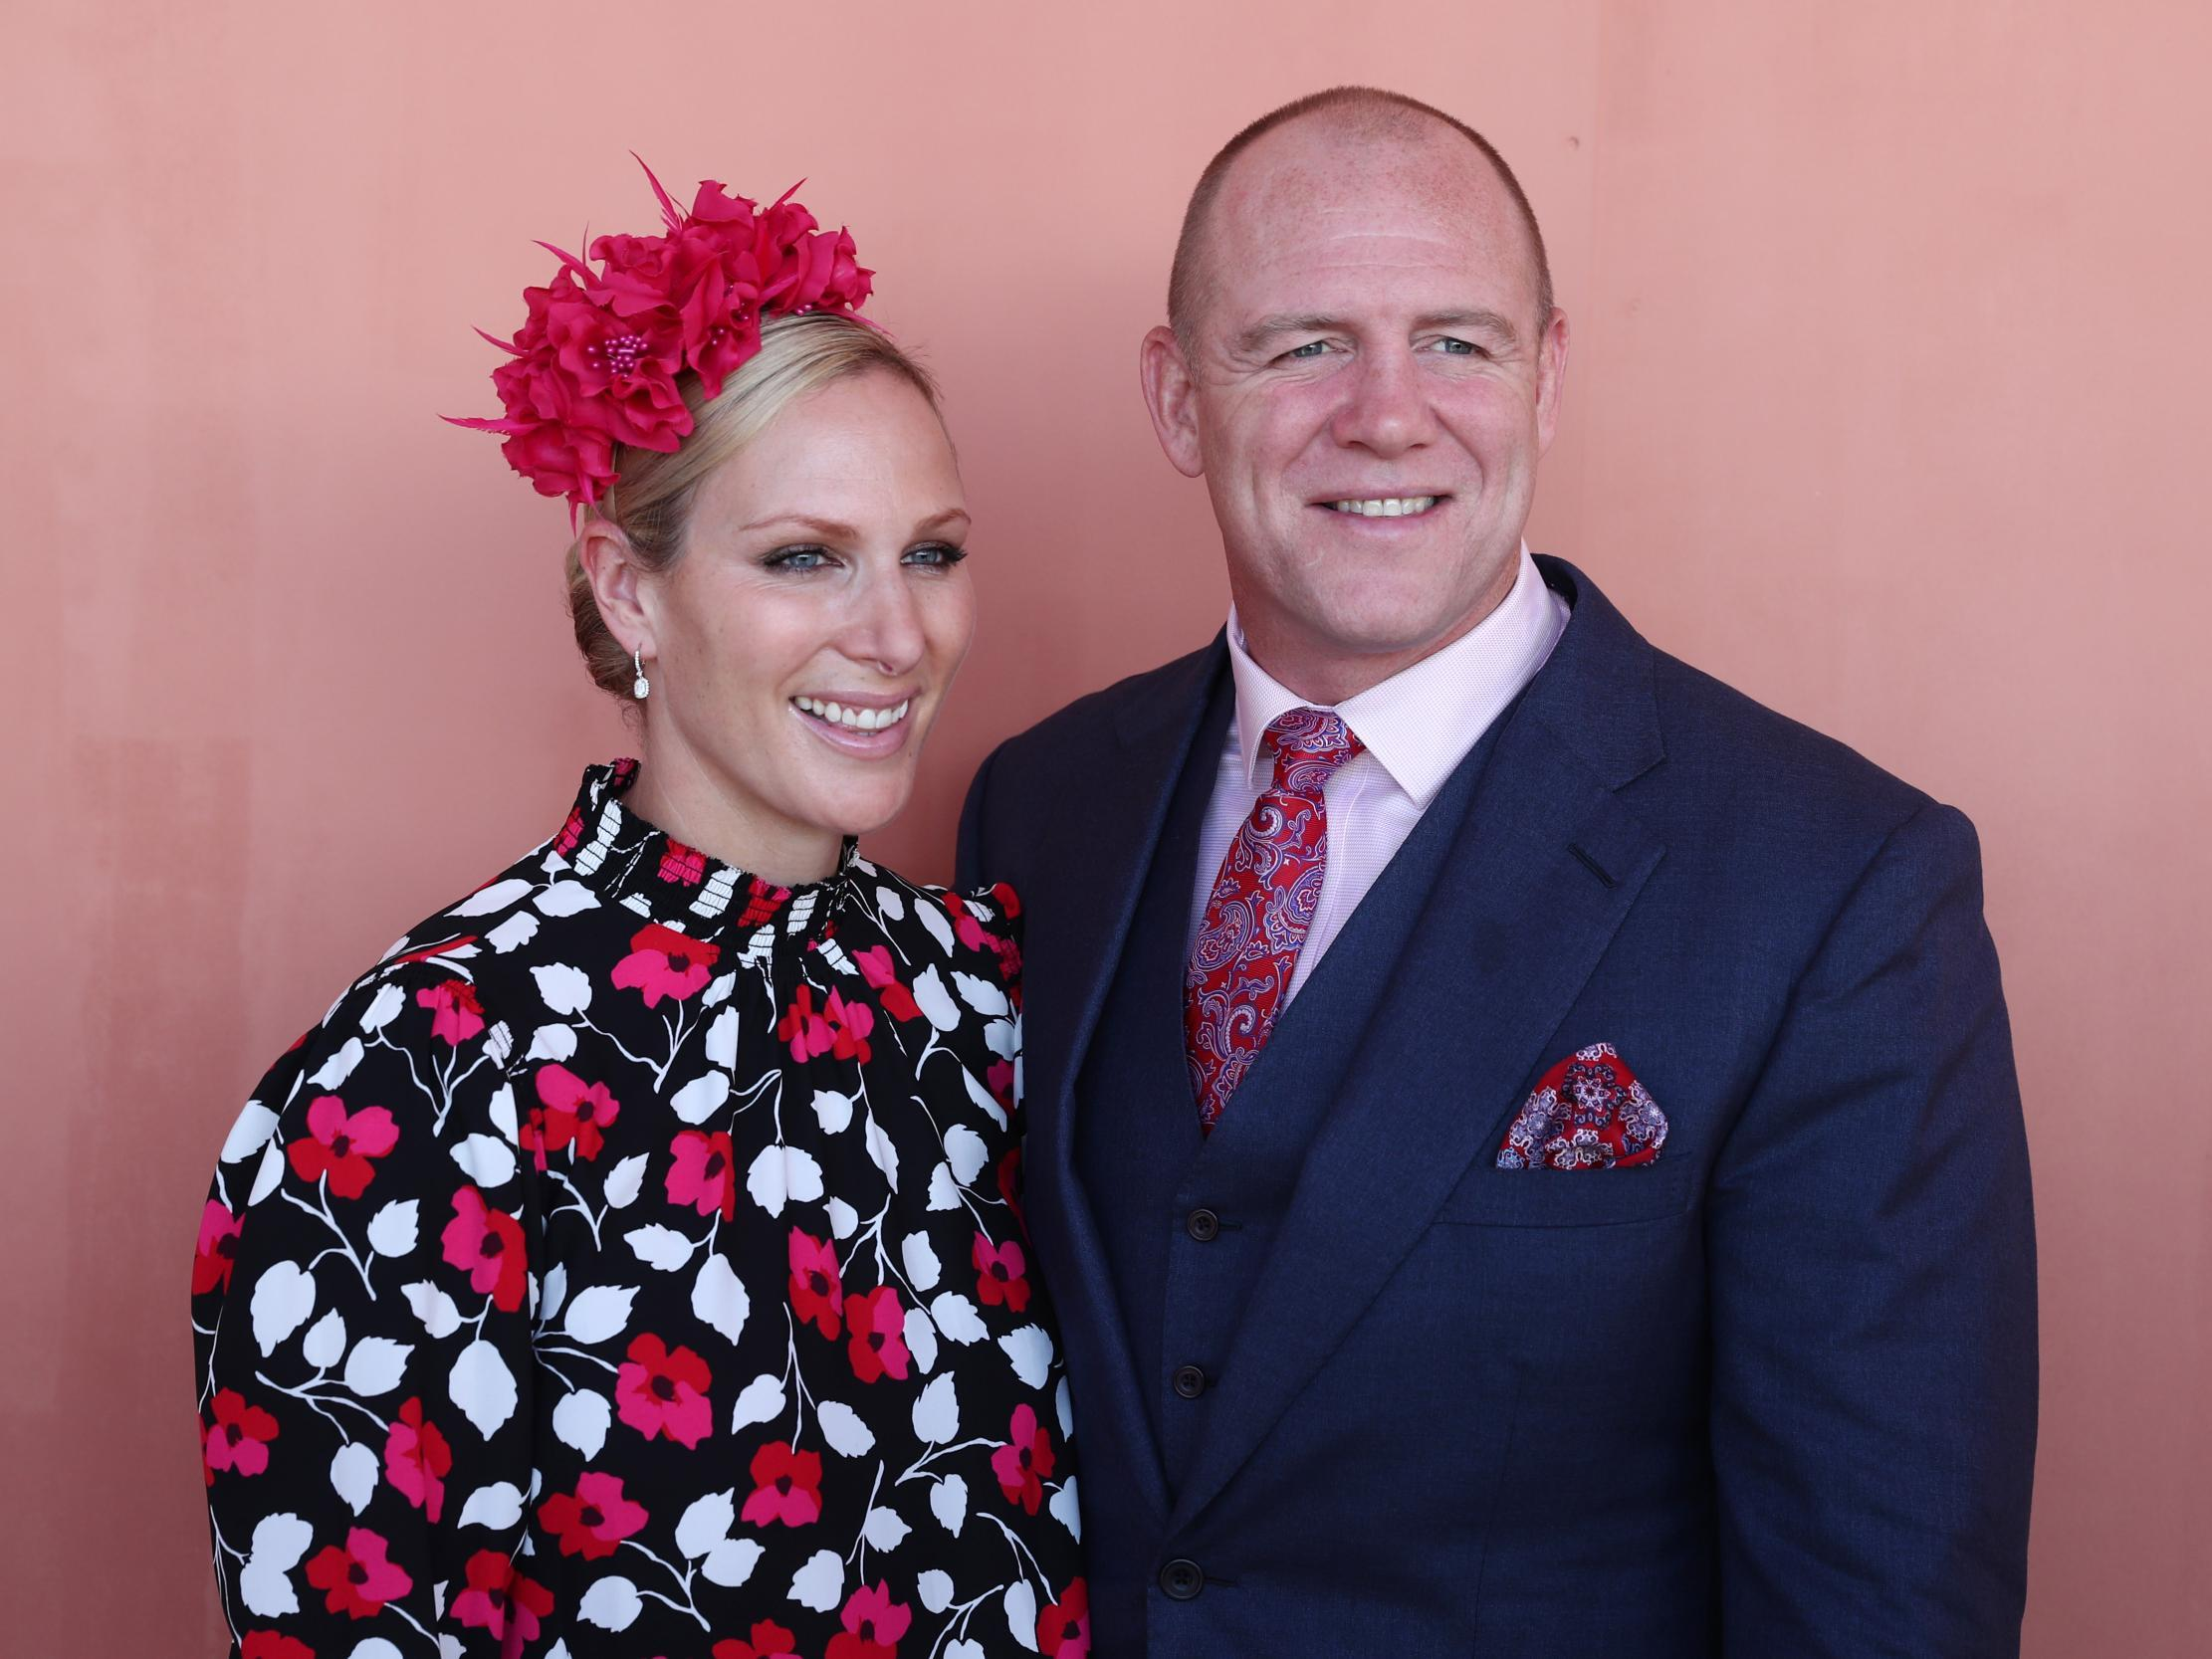 Mike Tindall says homeschooling is 'frustrating' and hopes daughter will return to school in June